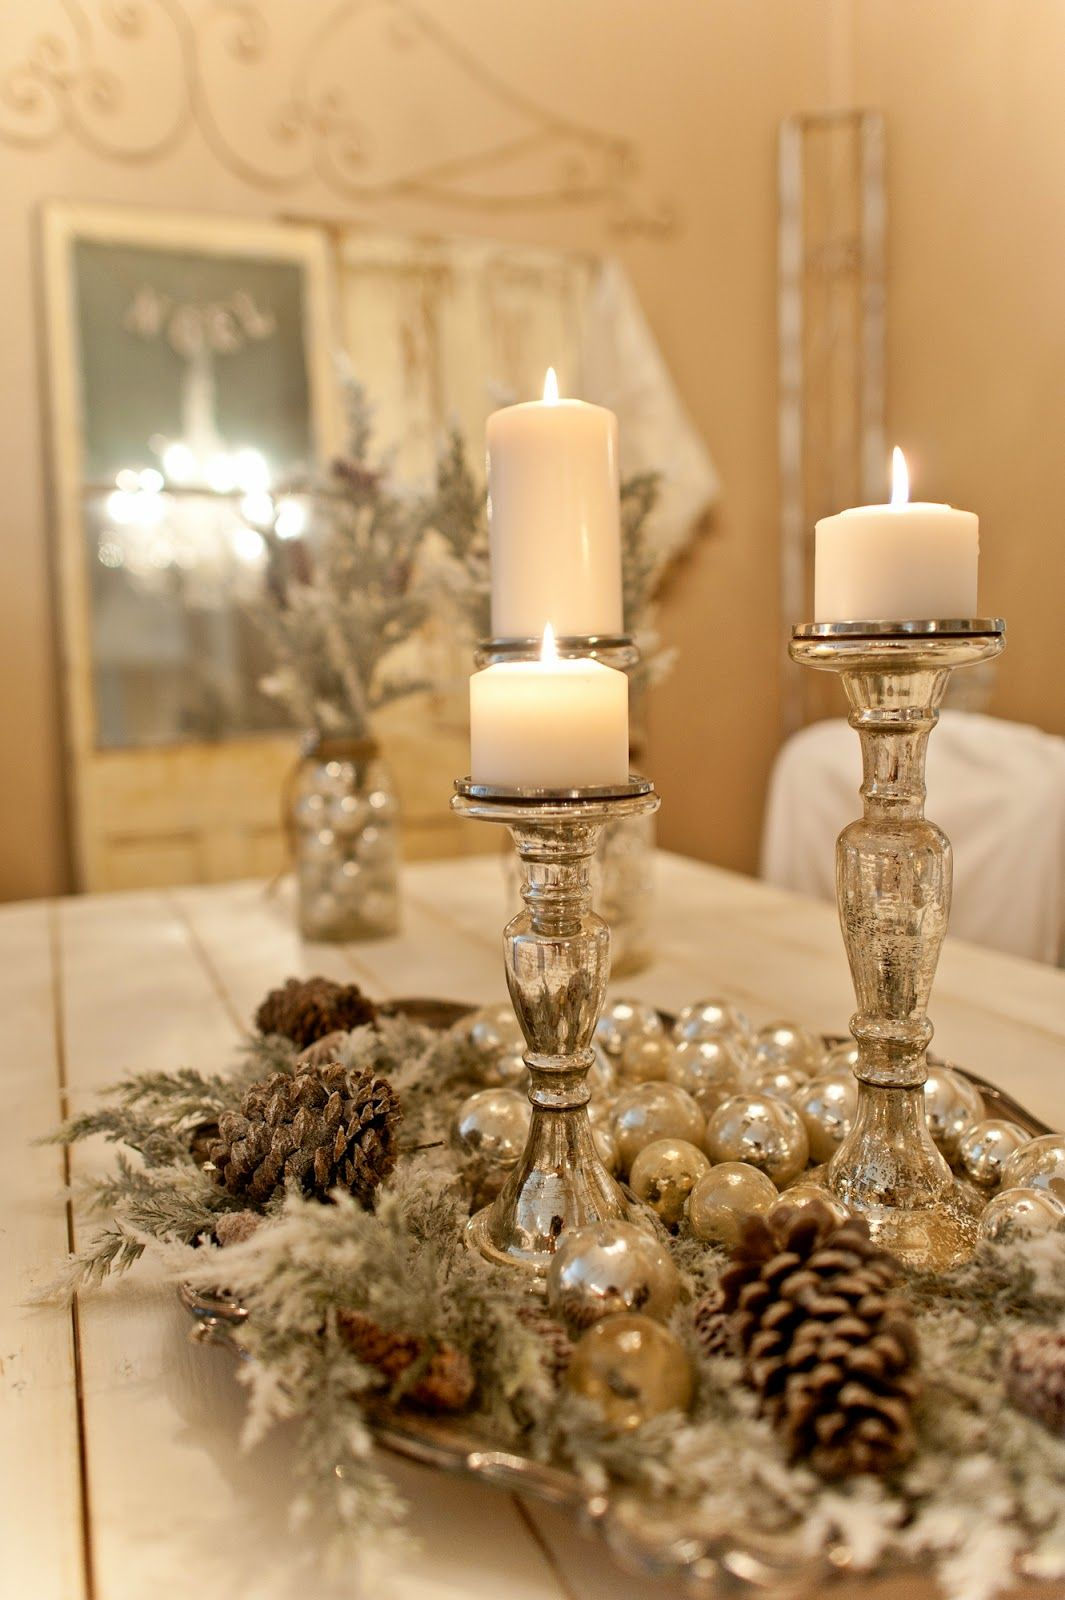 Christmas table decorations ideas make - 50 Creative Classy Diy Christmas Table Decoration Ideas